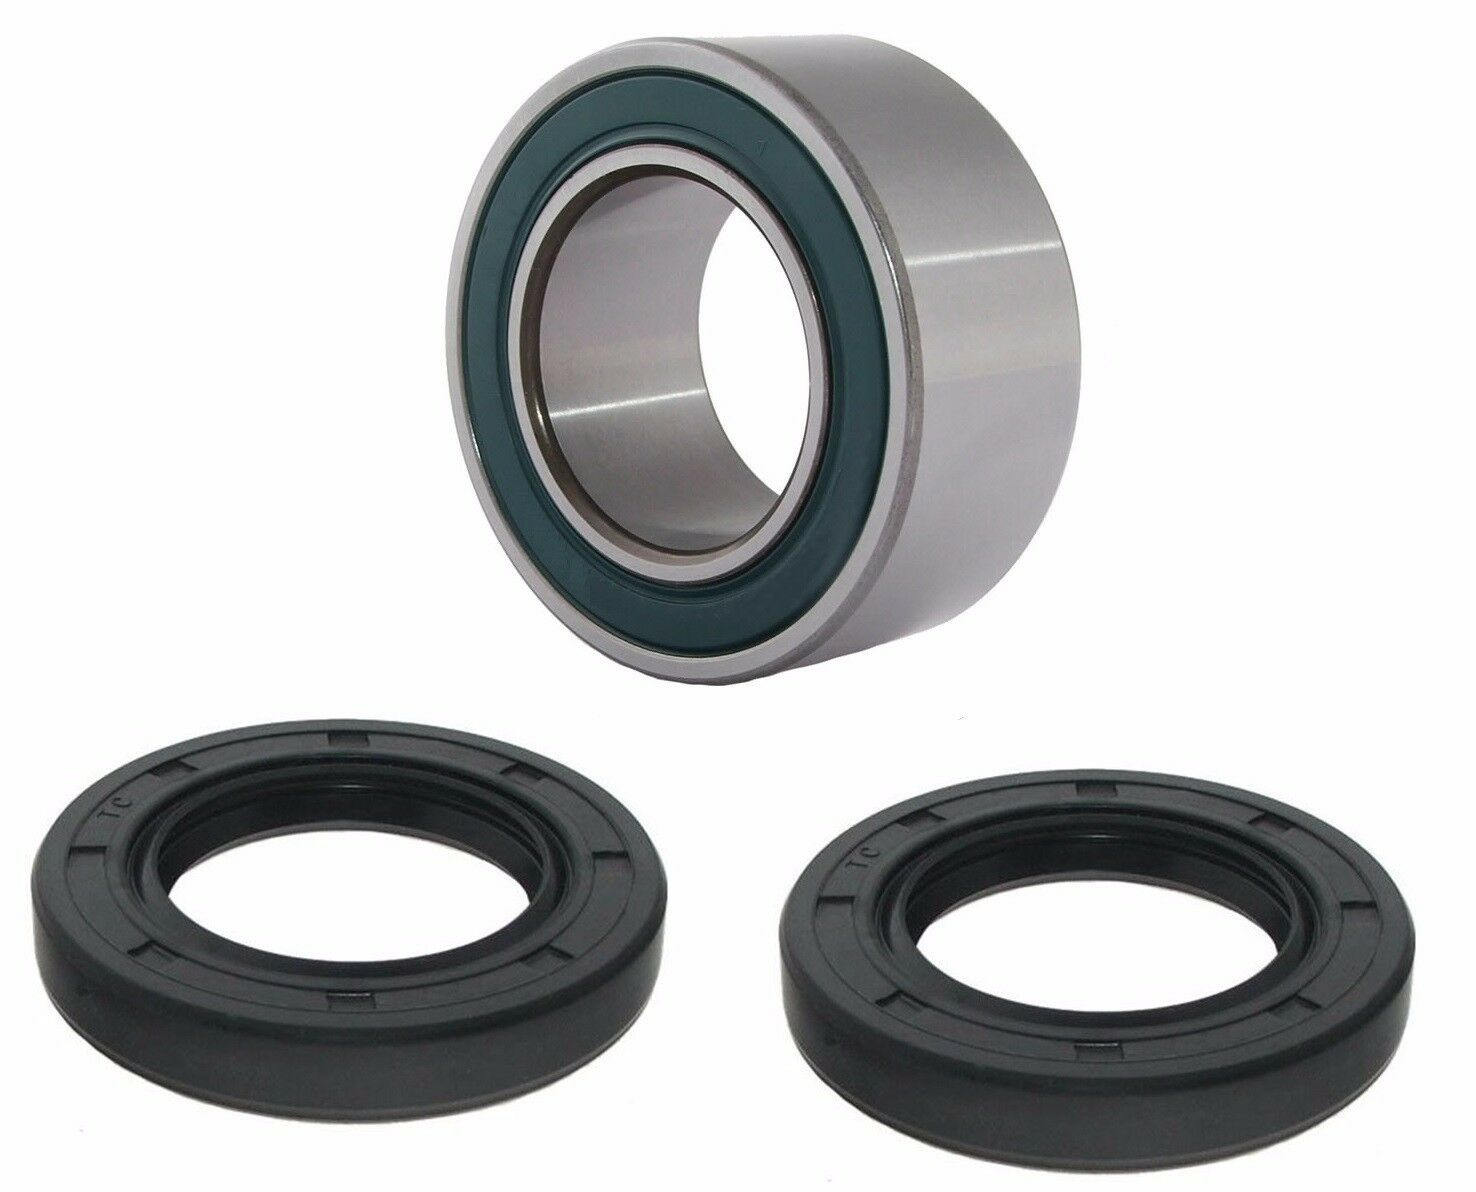 Both Front Wheel Bearing and Seal Kits Compatible with 00-06 Honda Rancher 350 400 4x4 Fourtrax TRX350FE TRX350FM TRX400FA TRX400FGA 4x4 Only